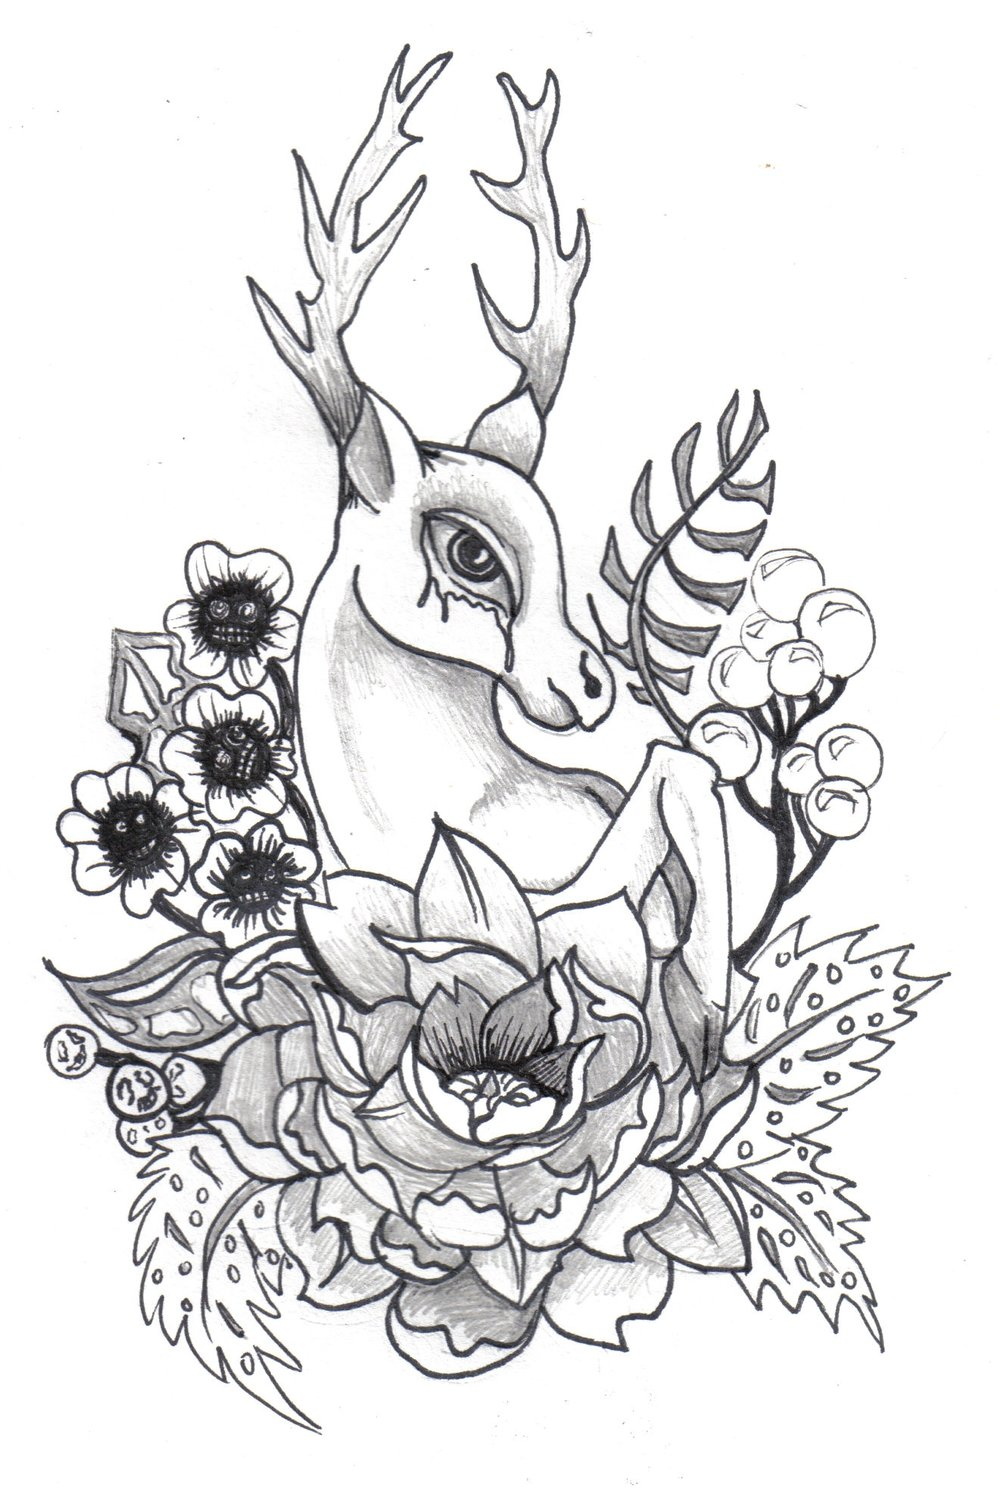 NO TEARS DEER   Original illustration done with pen and ink and pencil on paper. Prints availiable in my shop.